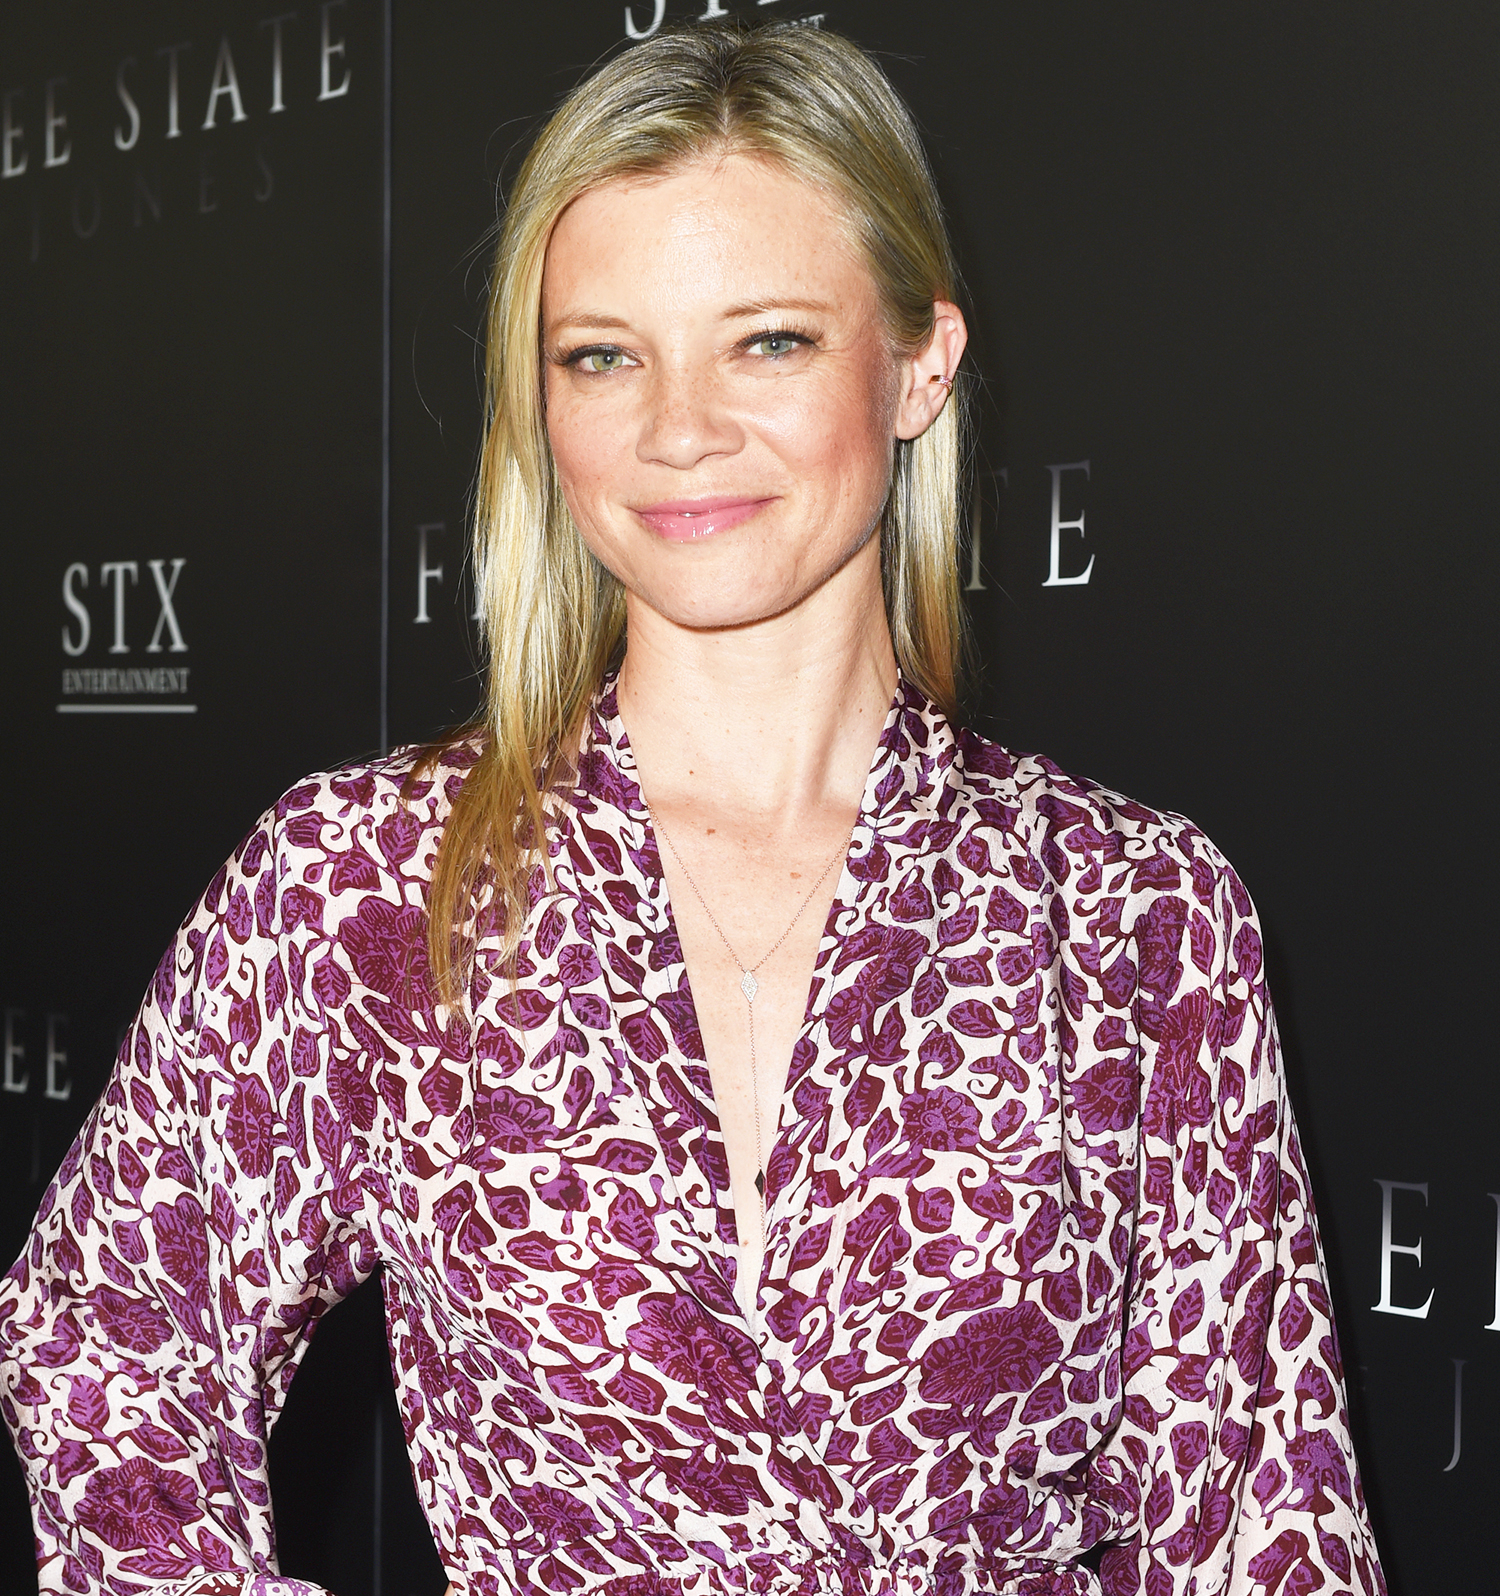 Selfie Amy Smart nudes (85 photos), Topless, Cleavage, Instagram, swimsuit 2006